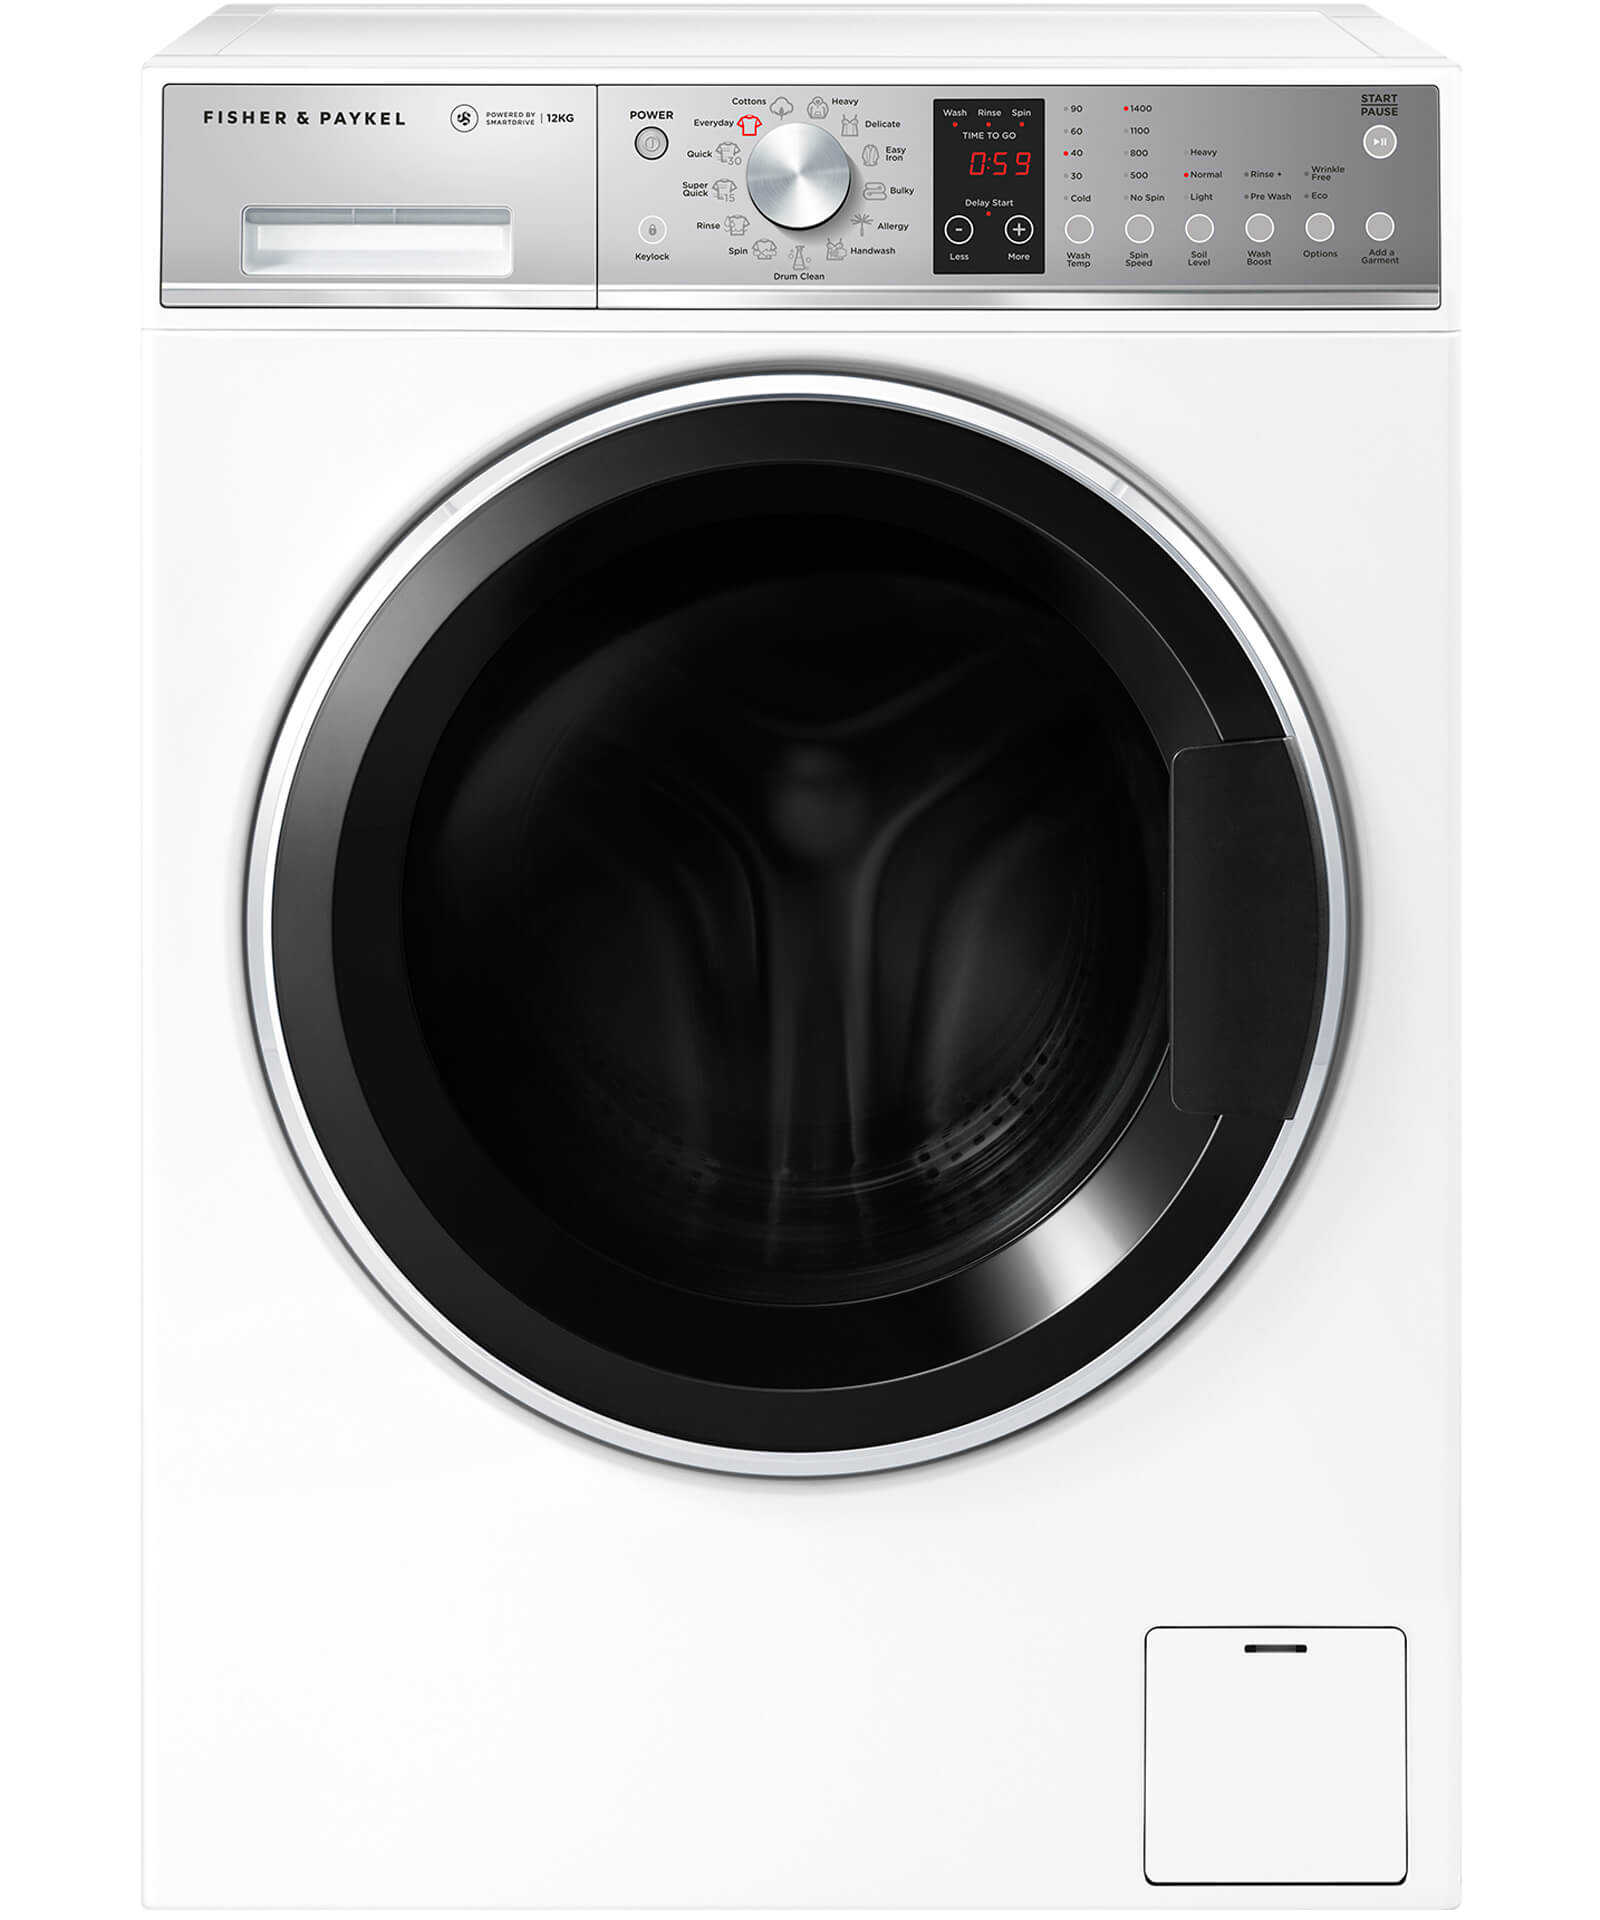 WH1260P1 - Front Loader Washing Machine, 12kg | Fisher ...